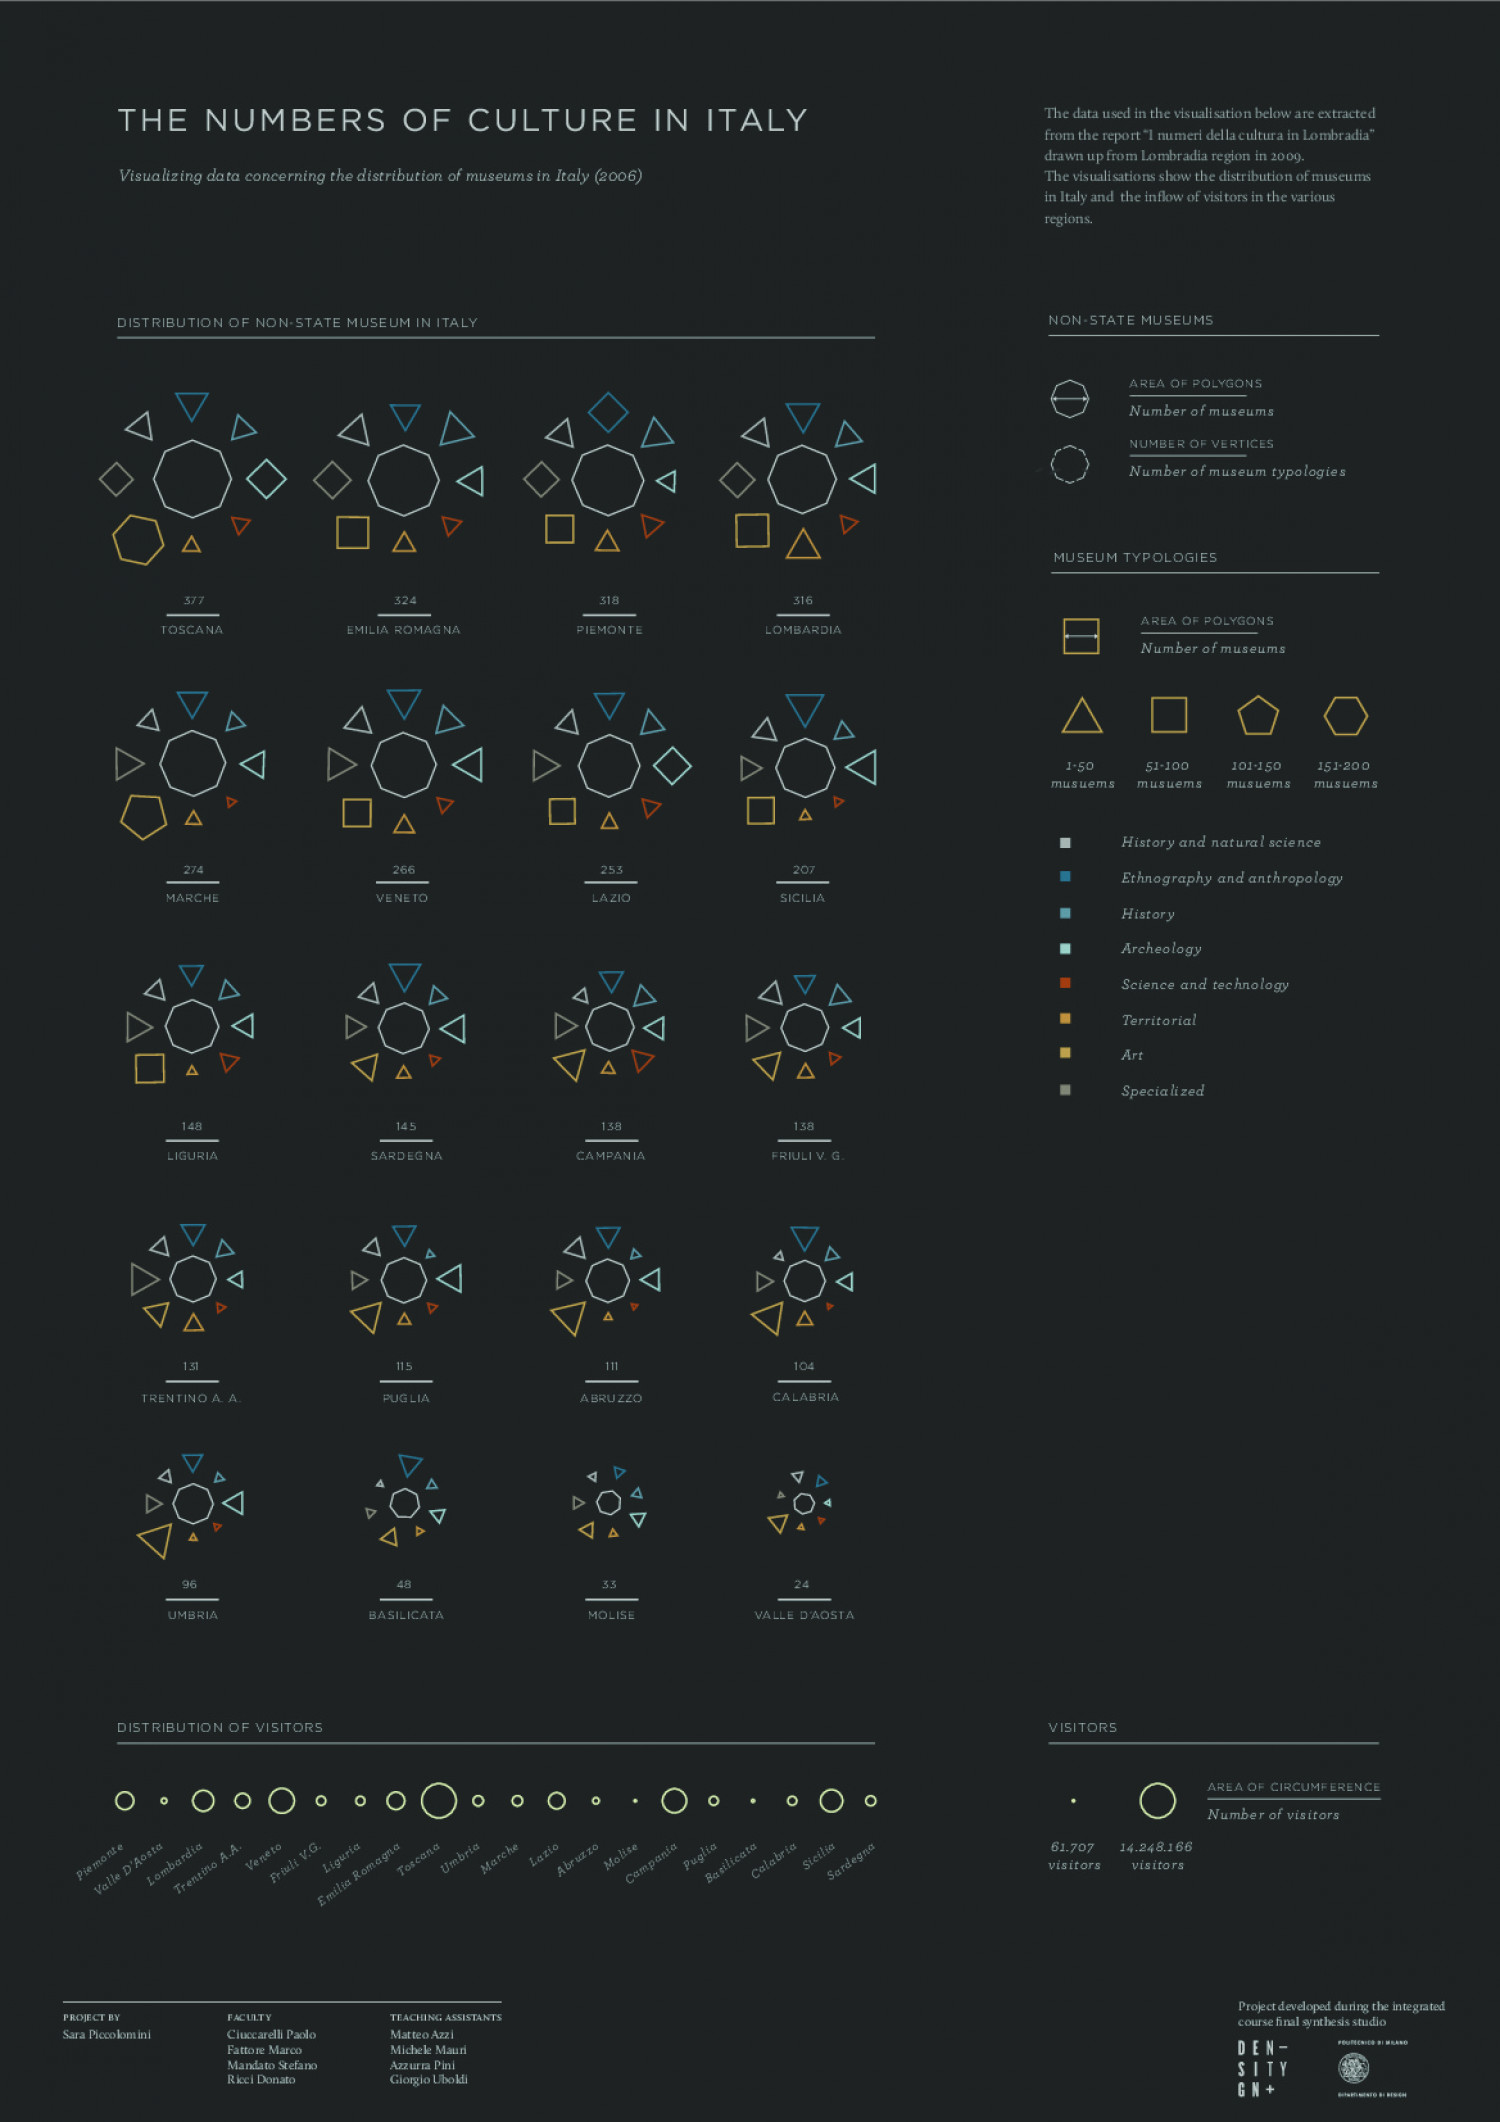 The Numbers of Culture in Italy Infographic